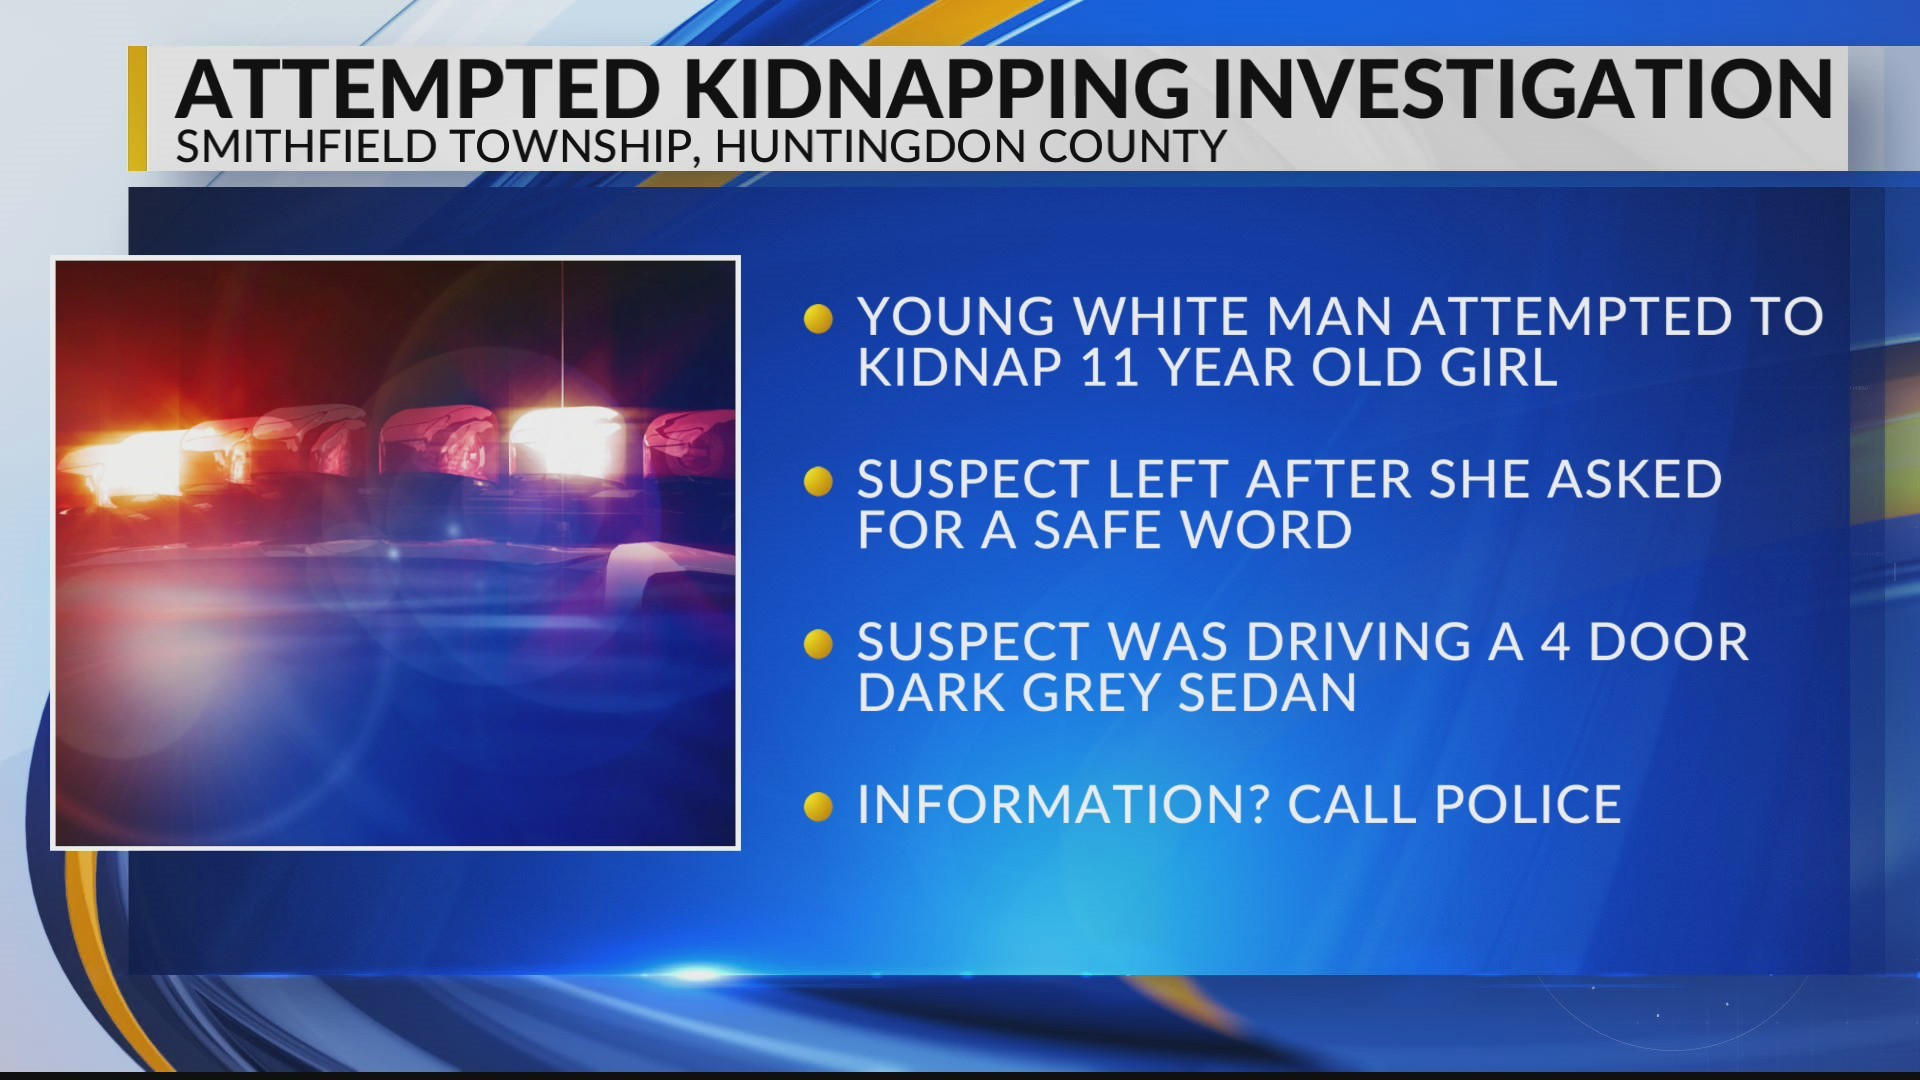 Child safe after attempted kidnapping